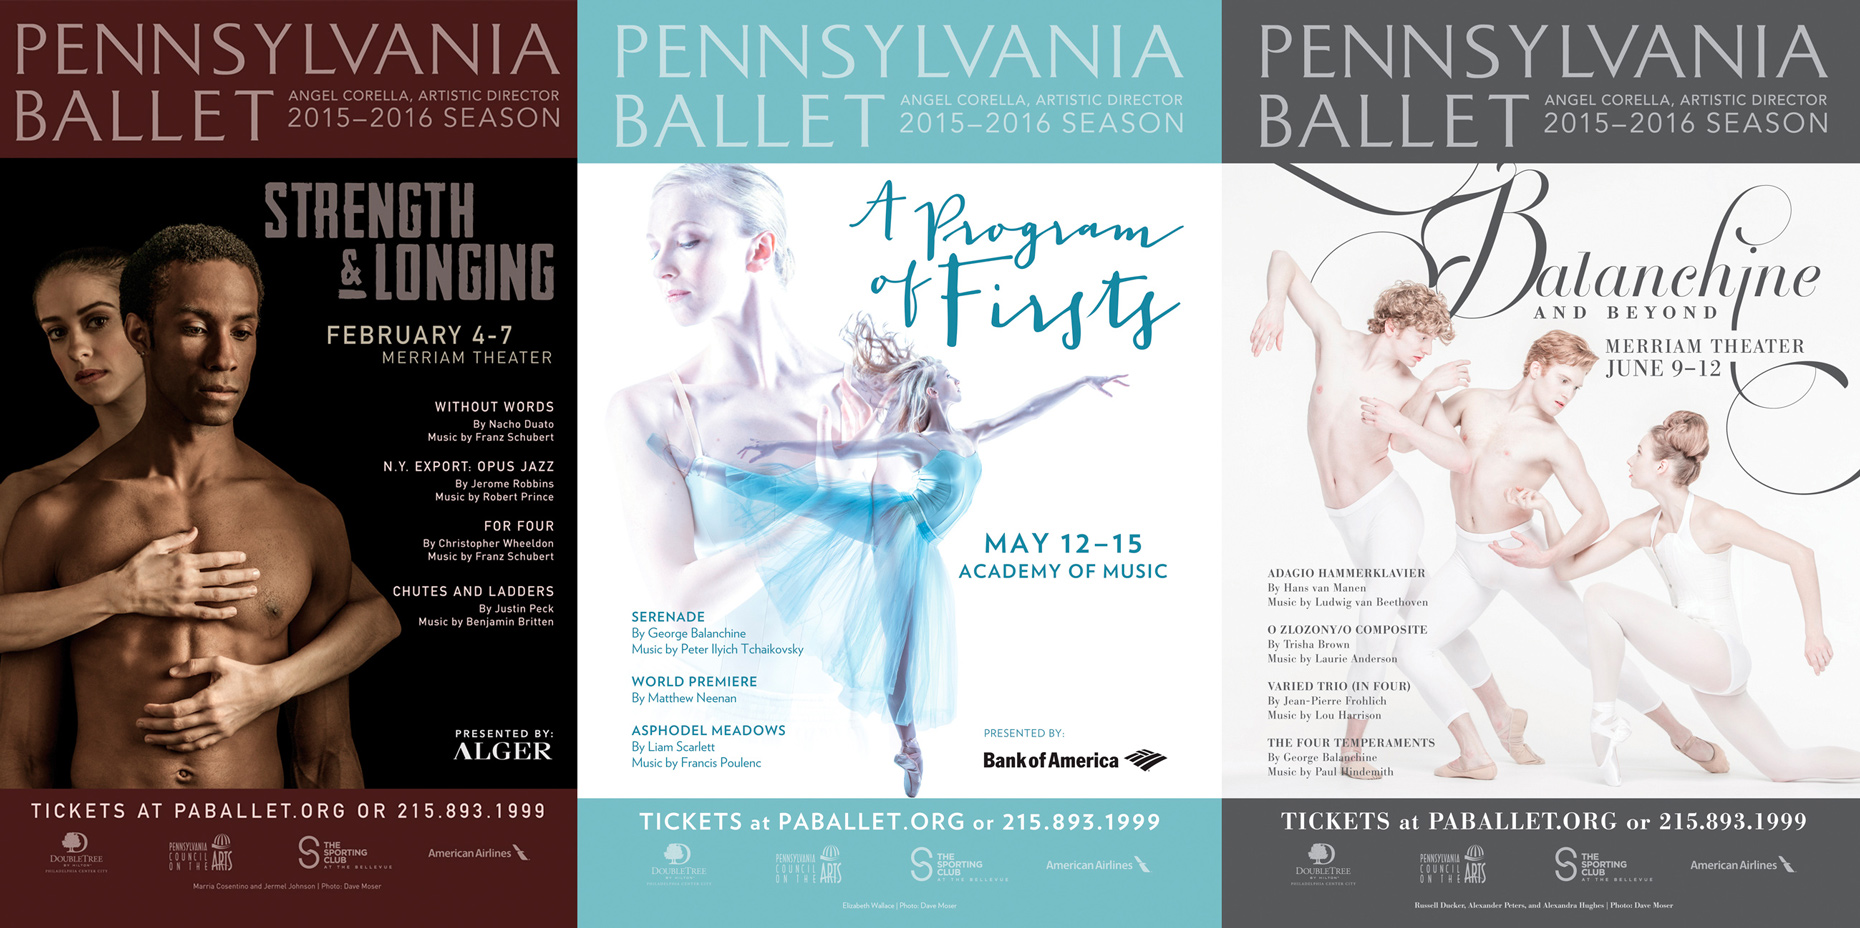 Pennsylvania Ballet Advertising | Philadephia Photographer